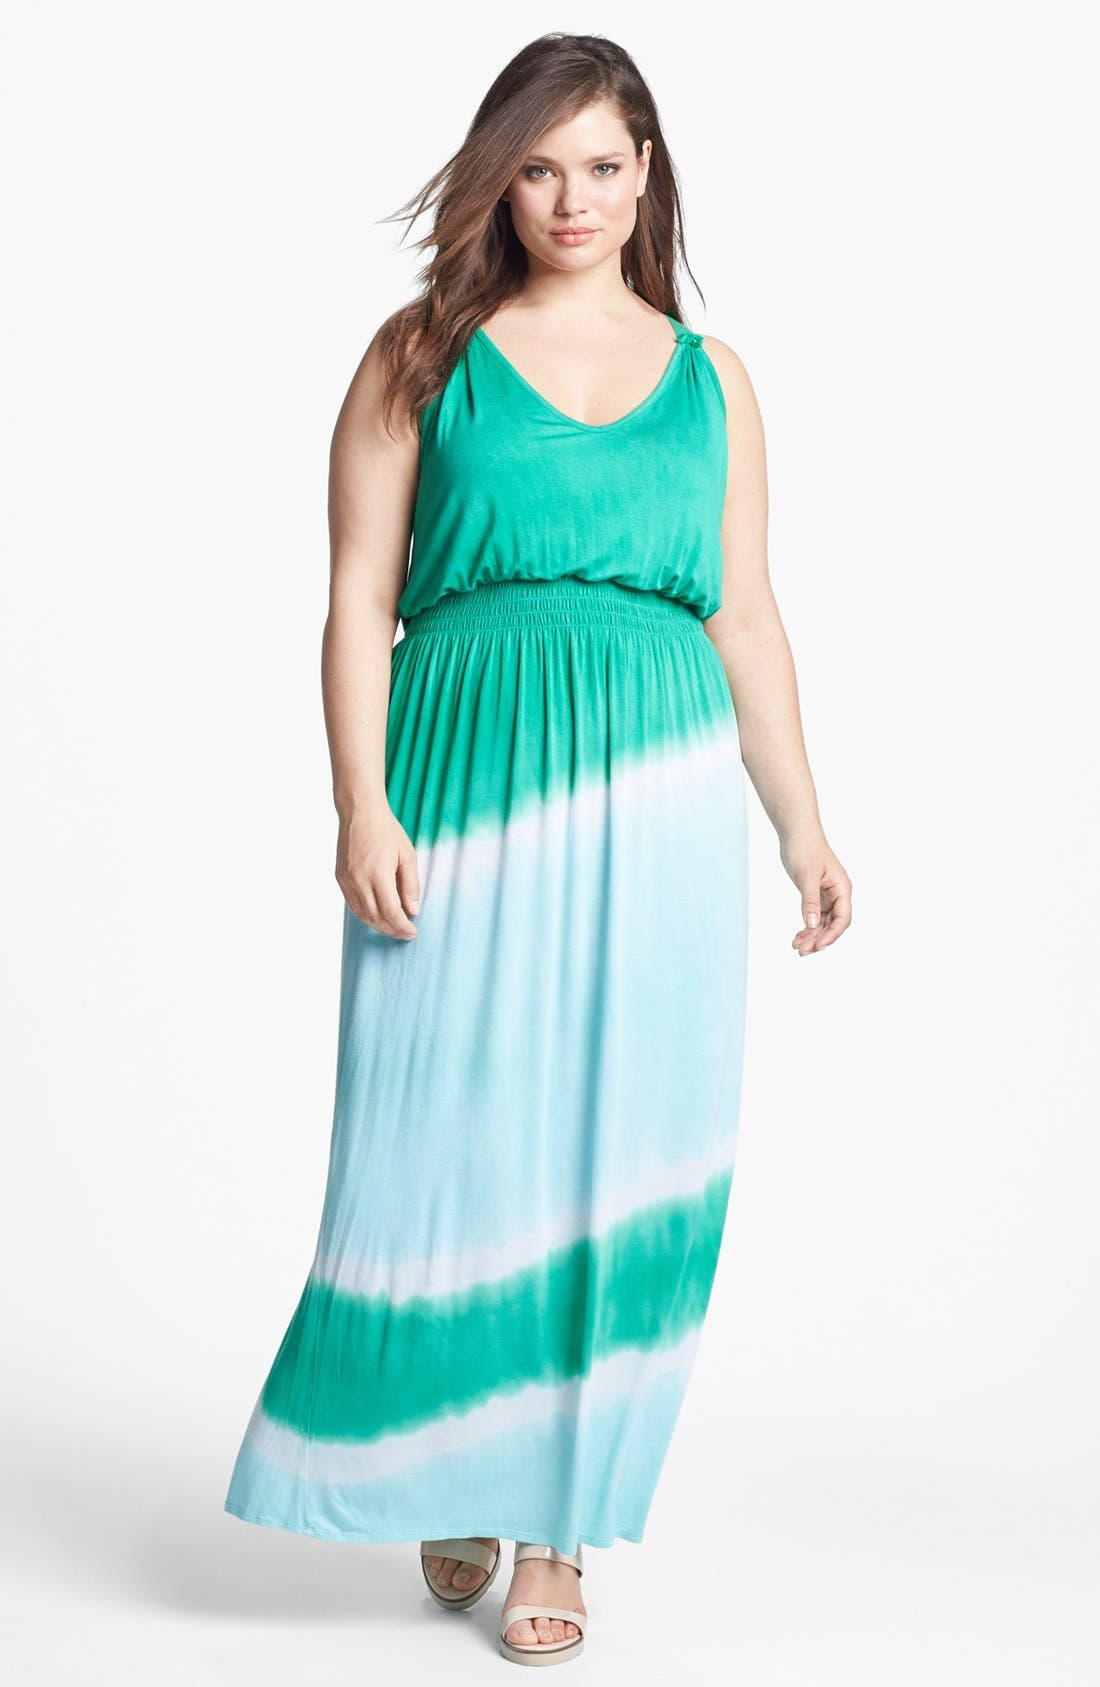 Alternate Image 1 Selected - Loveappella Tie Dye Maxi Dress (Plus Size)